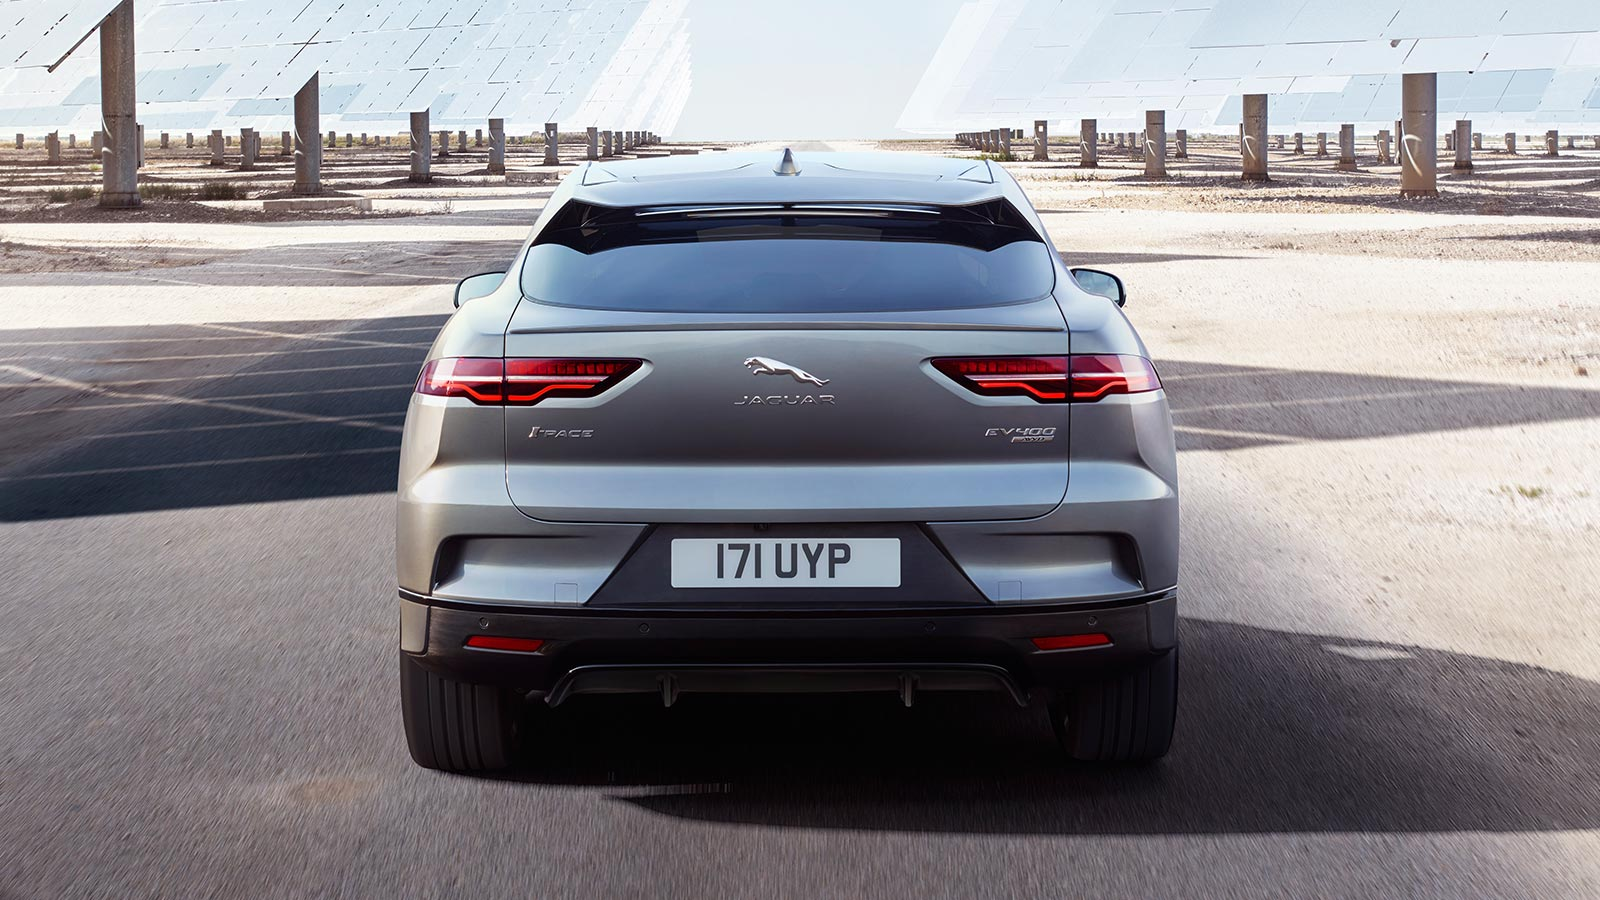 Rear Vieew of Jaguar I-PACE